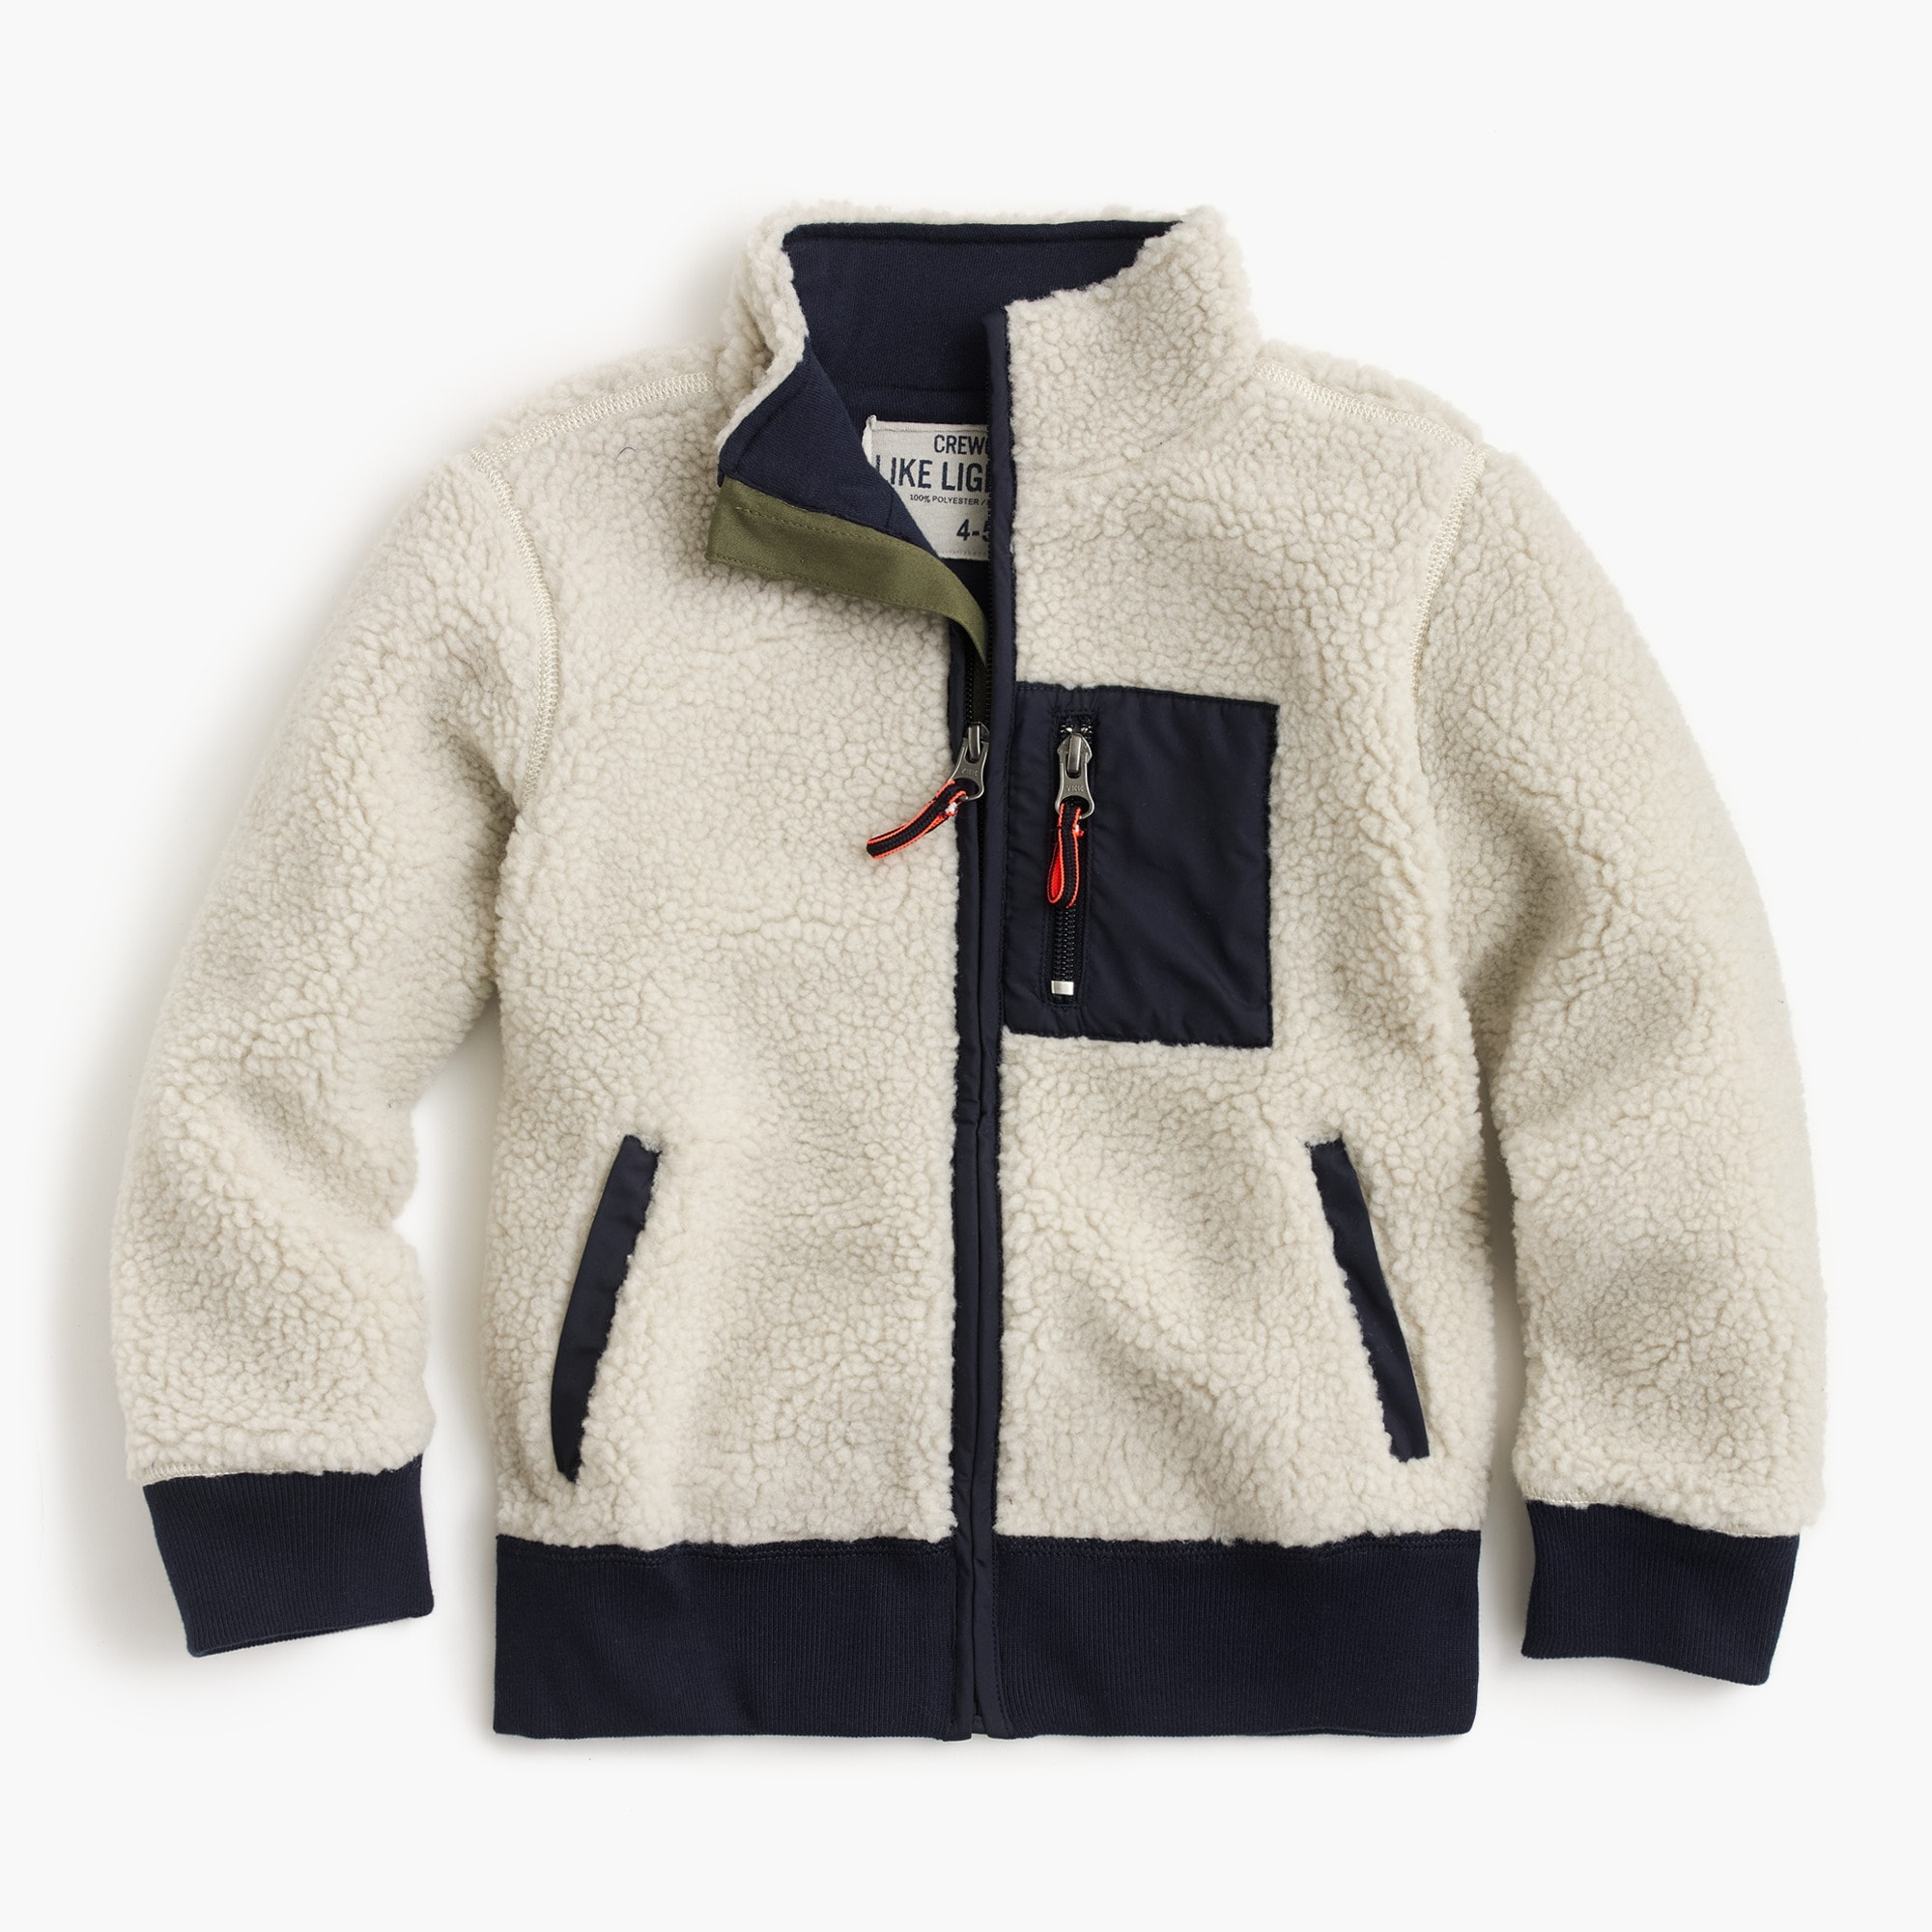 Boys' fleece jacket